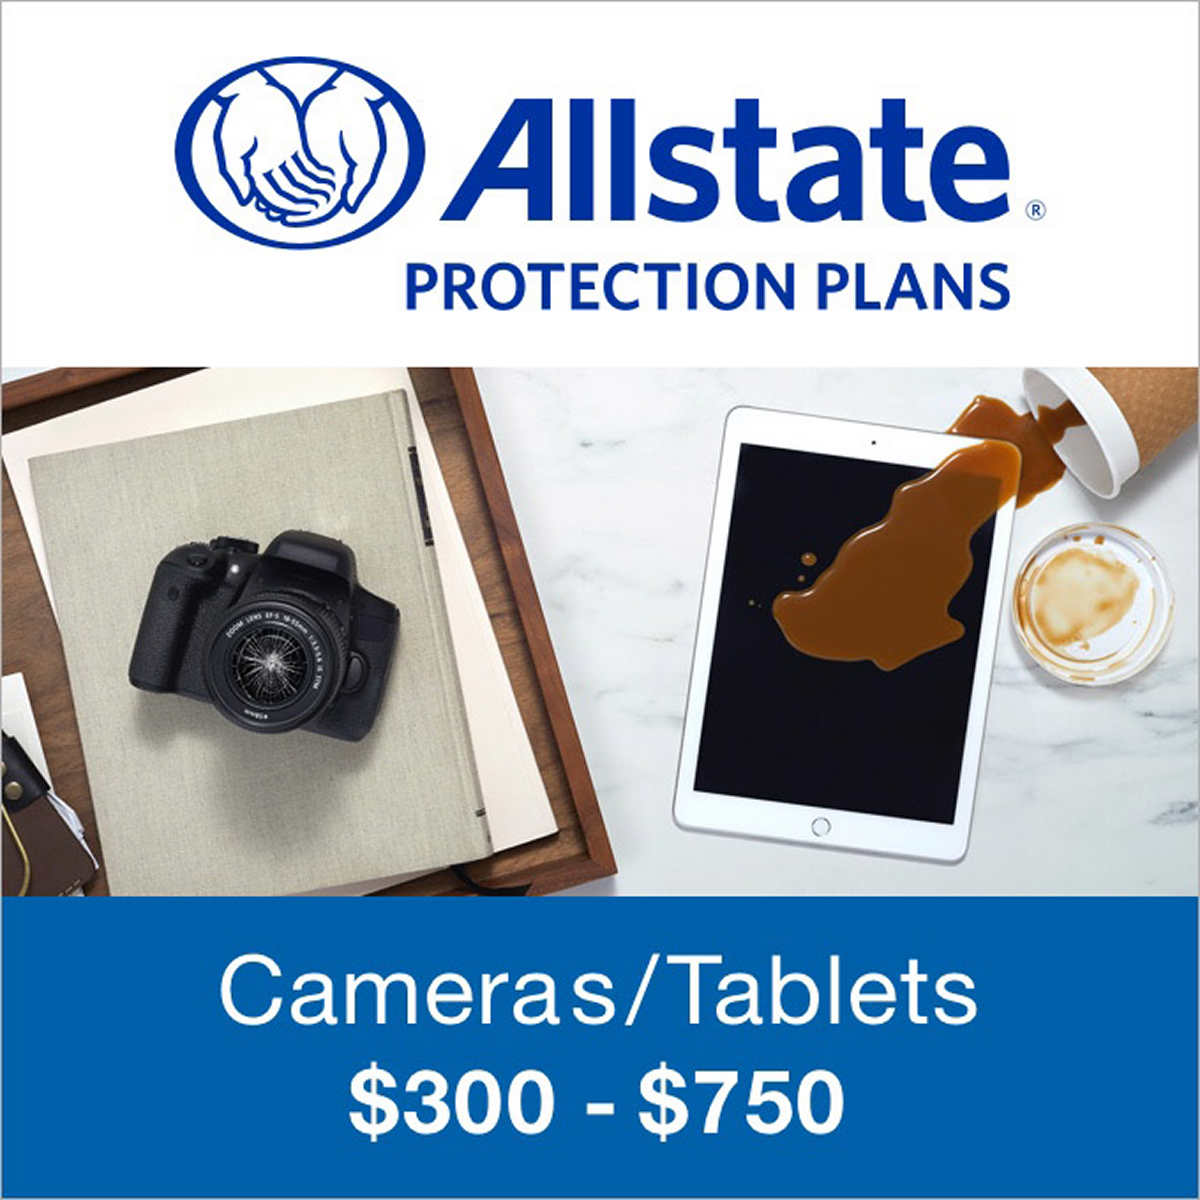 SquareTrade 2 Years (For Tablets and Cameras: $300 - $750)